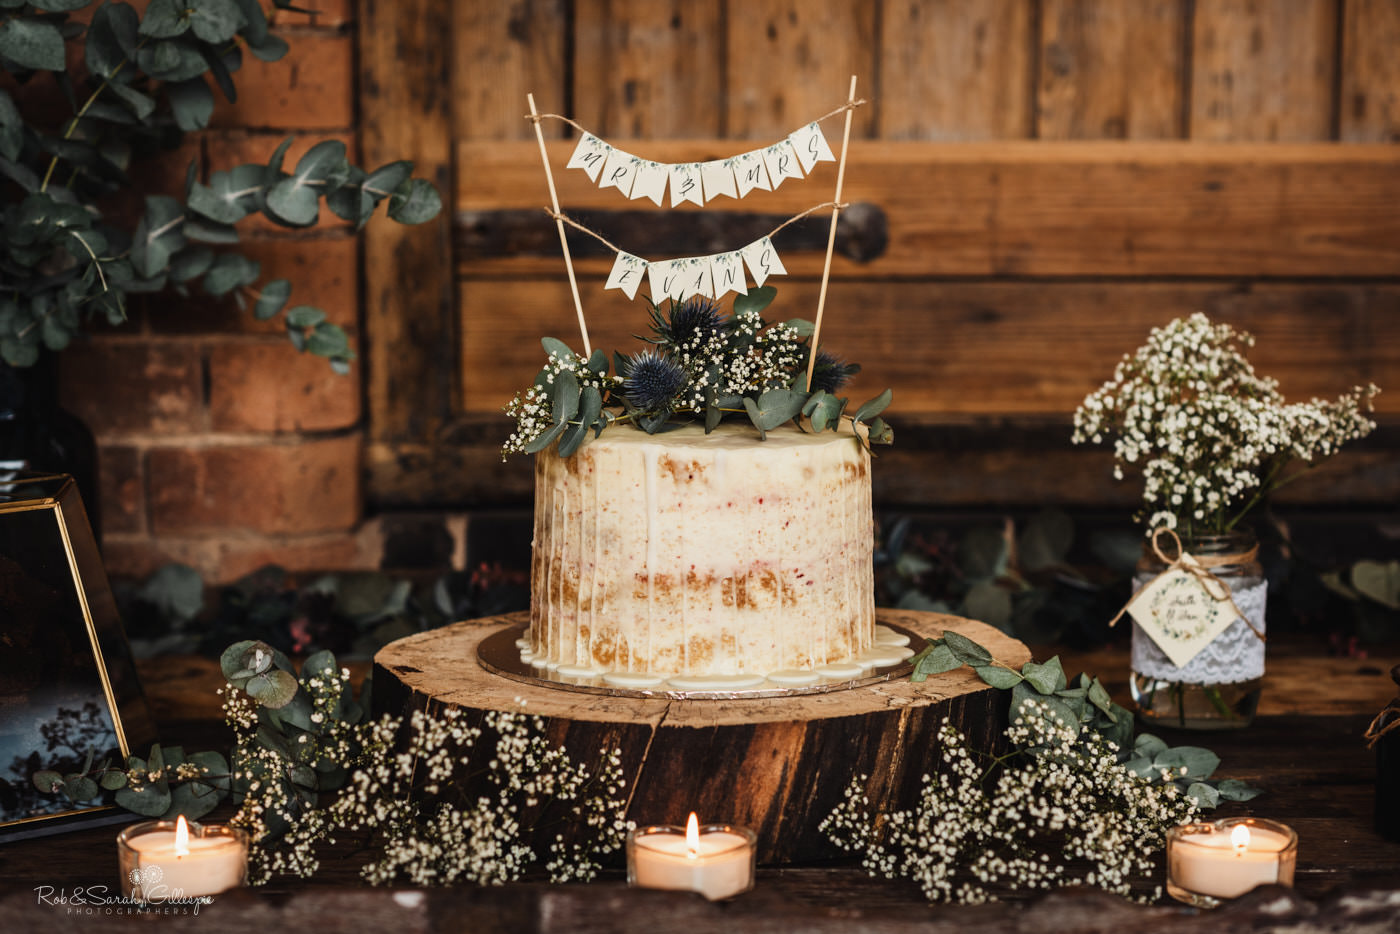 Wedding cake at Swallows Nest Barn